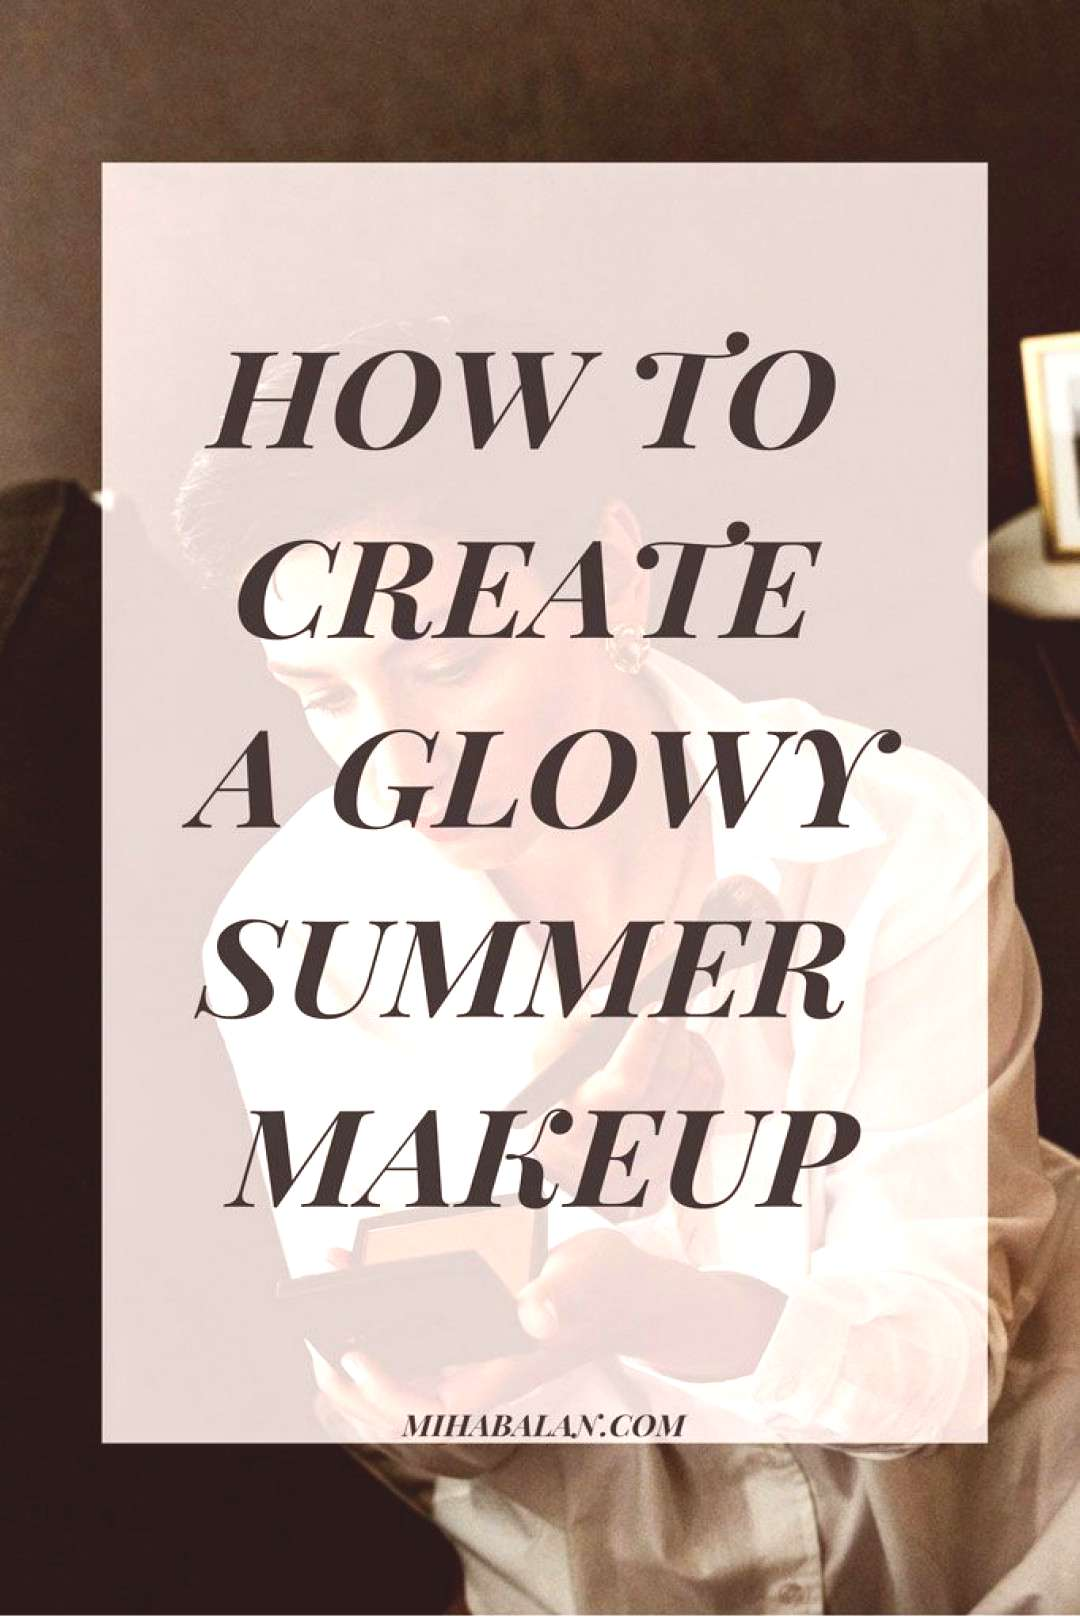 THE BEAUTY PRODUCTS YOU NEED FOR A FAST AND EASY SUMMER LOOK - MAKEUP IDEA| SUMMER MAKEUP | COSMETI